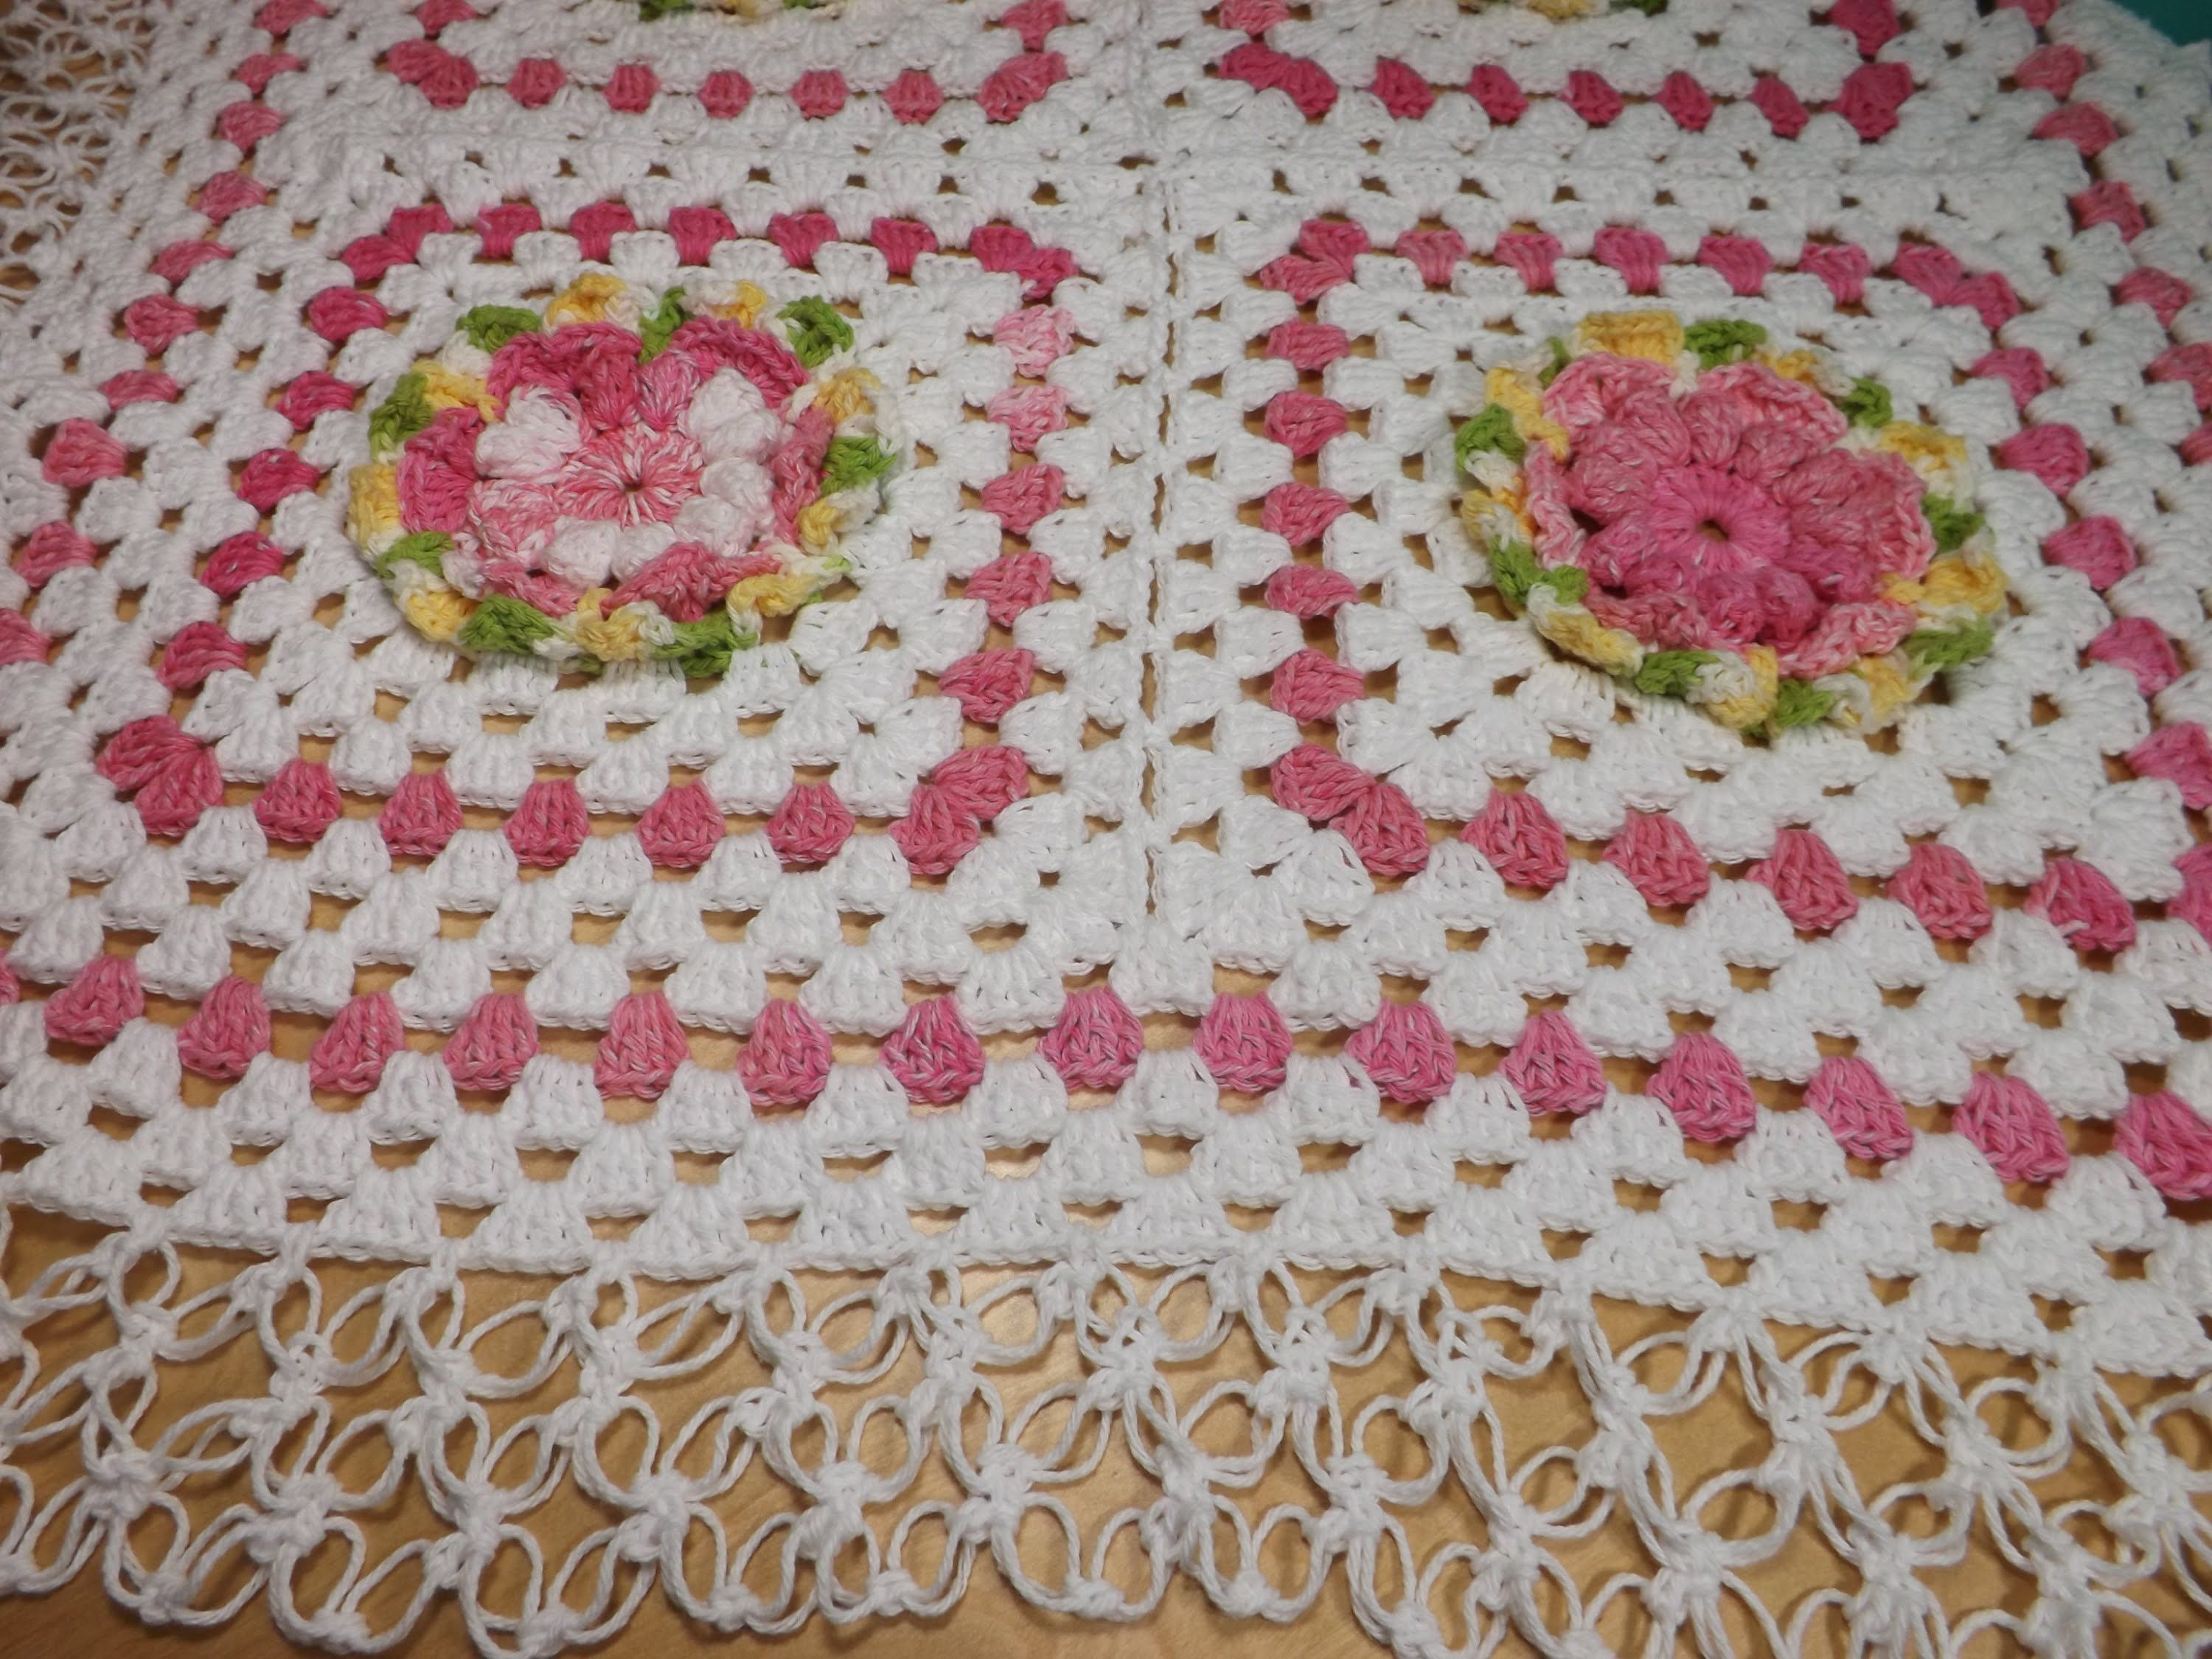 Crochet granny squares baby blanket part 2 - with Ruby Stedman ...